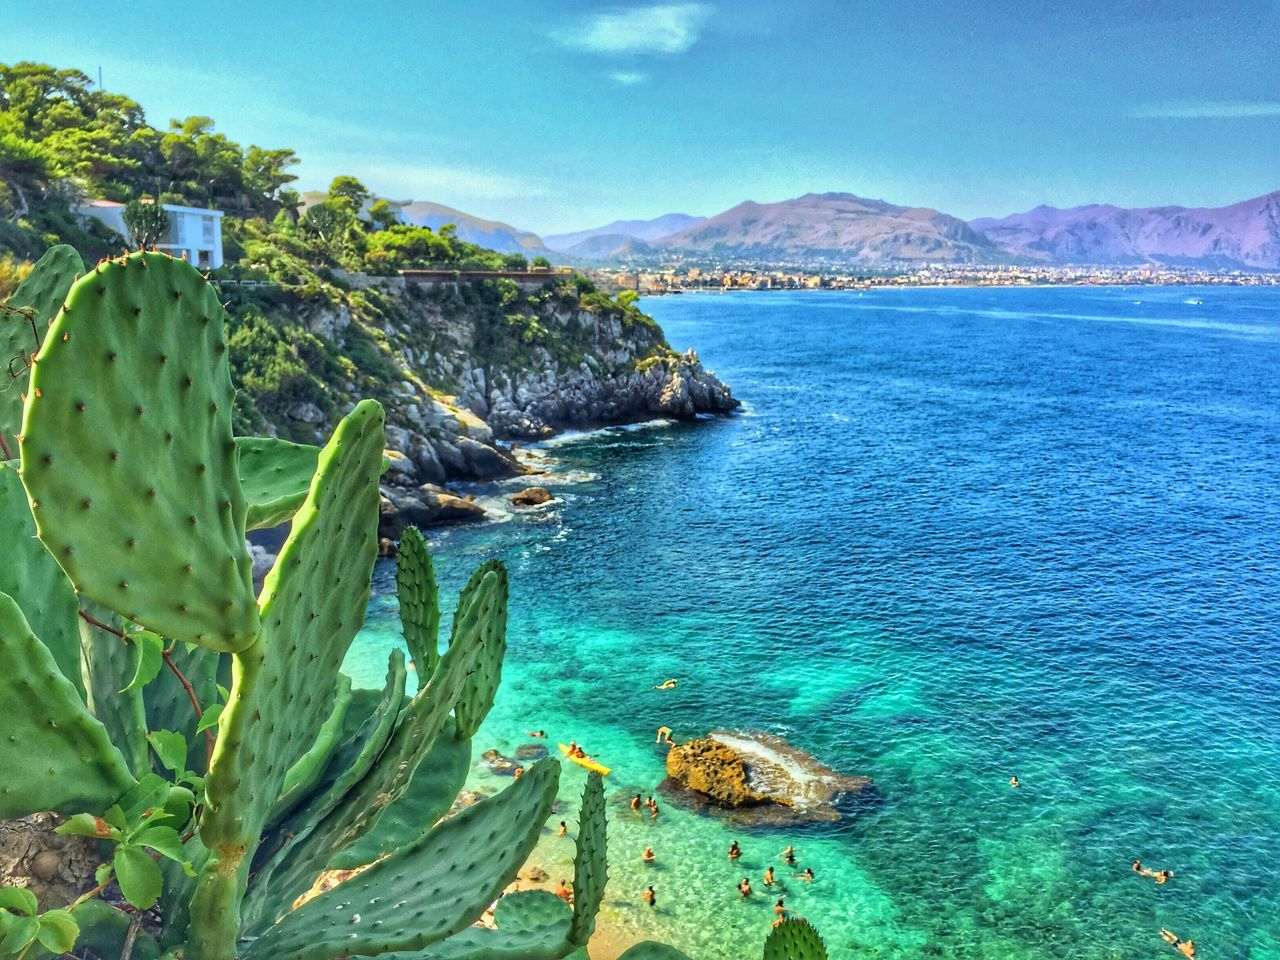 Sicily Nature Sea Water Tranquility Beauty In Nature Outdoors Day Blue Cactus Sky Plant Amazing MyArt Visual Feast Neighborhood Map The Great Outdoors - 2017 EyeEm Awards The Portraitist - 2017 EyeEm Awards EyeEmNewHere EyeEmNewHere BYOPaper! Live For The Story Out Of The Box EyeEmNewHere